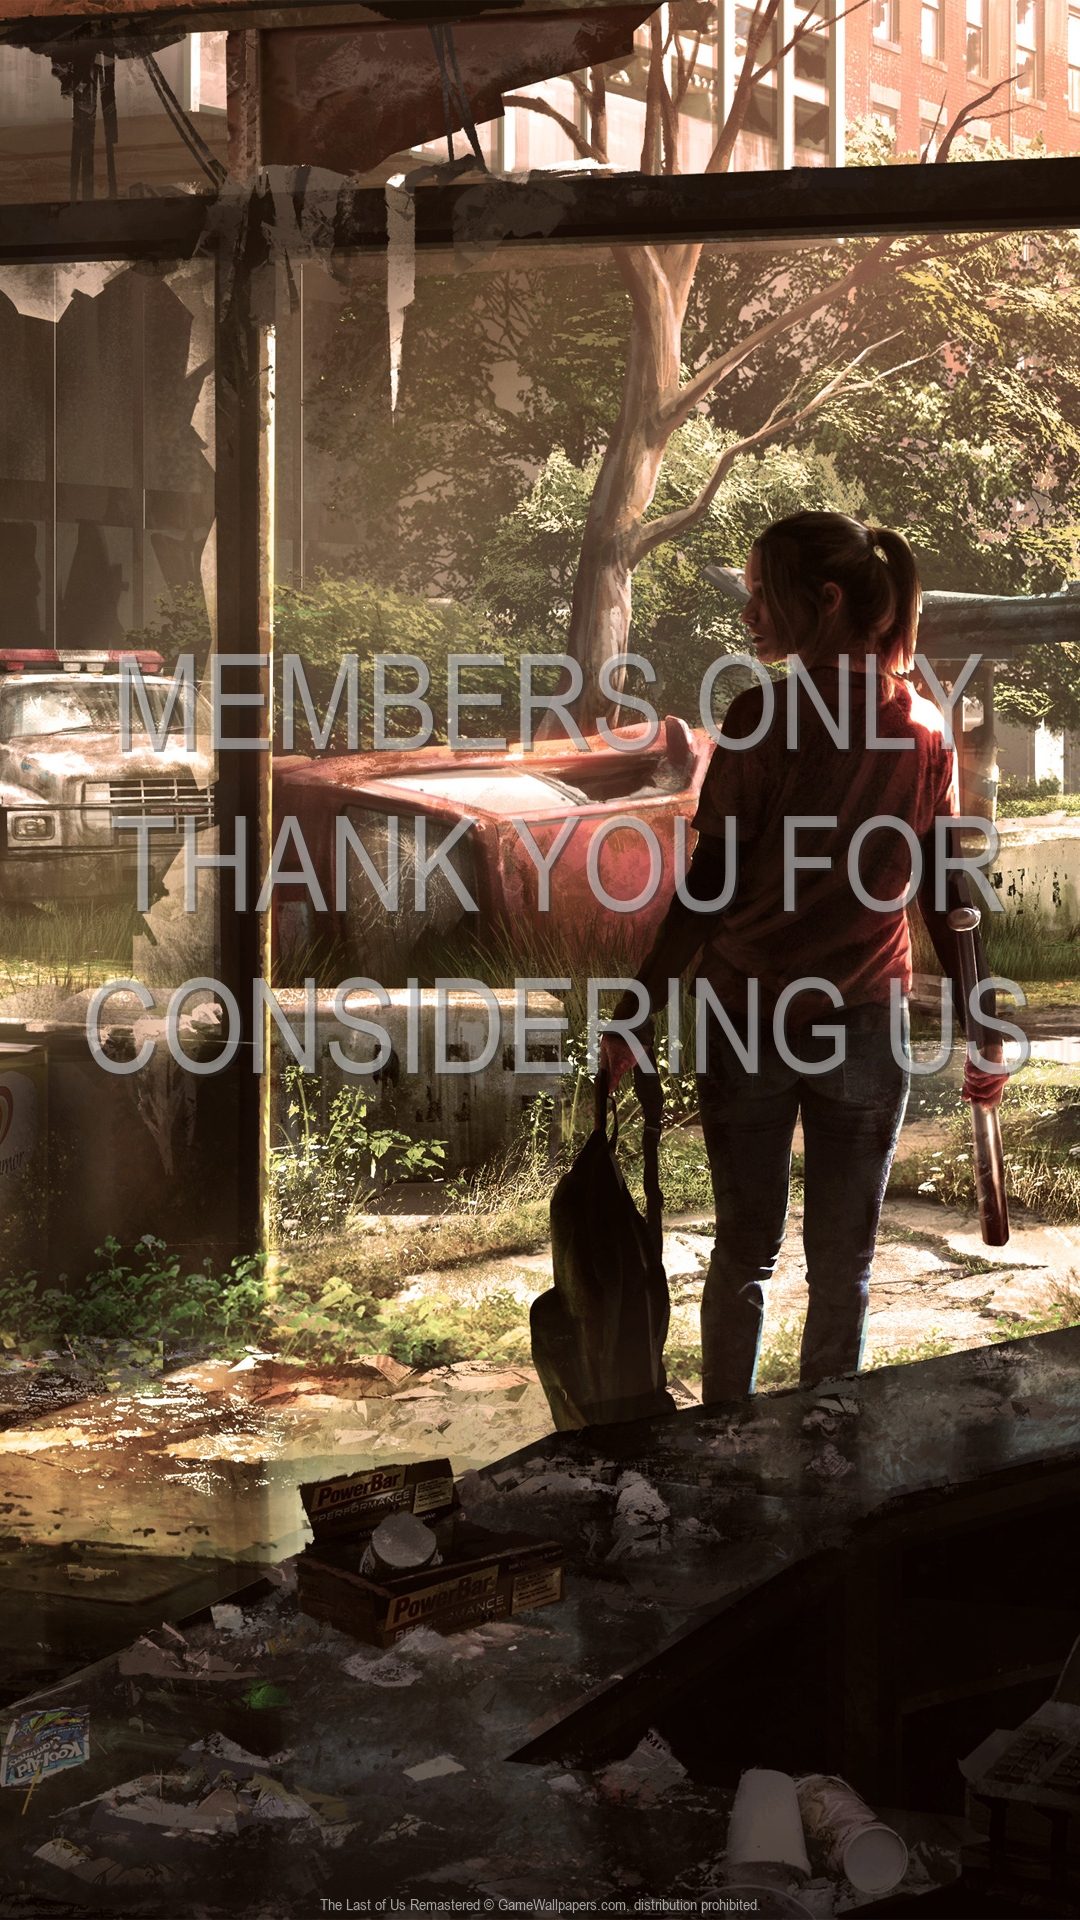 The Last of Us: Remastered 1920x1080 Mobile wallpaper or background 02